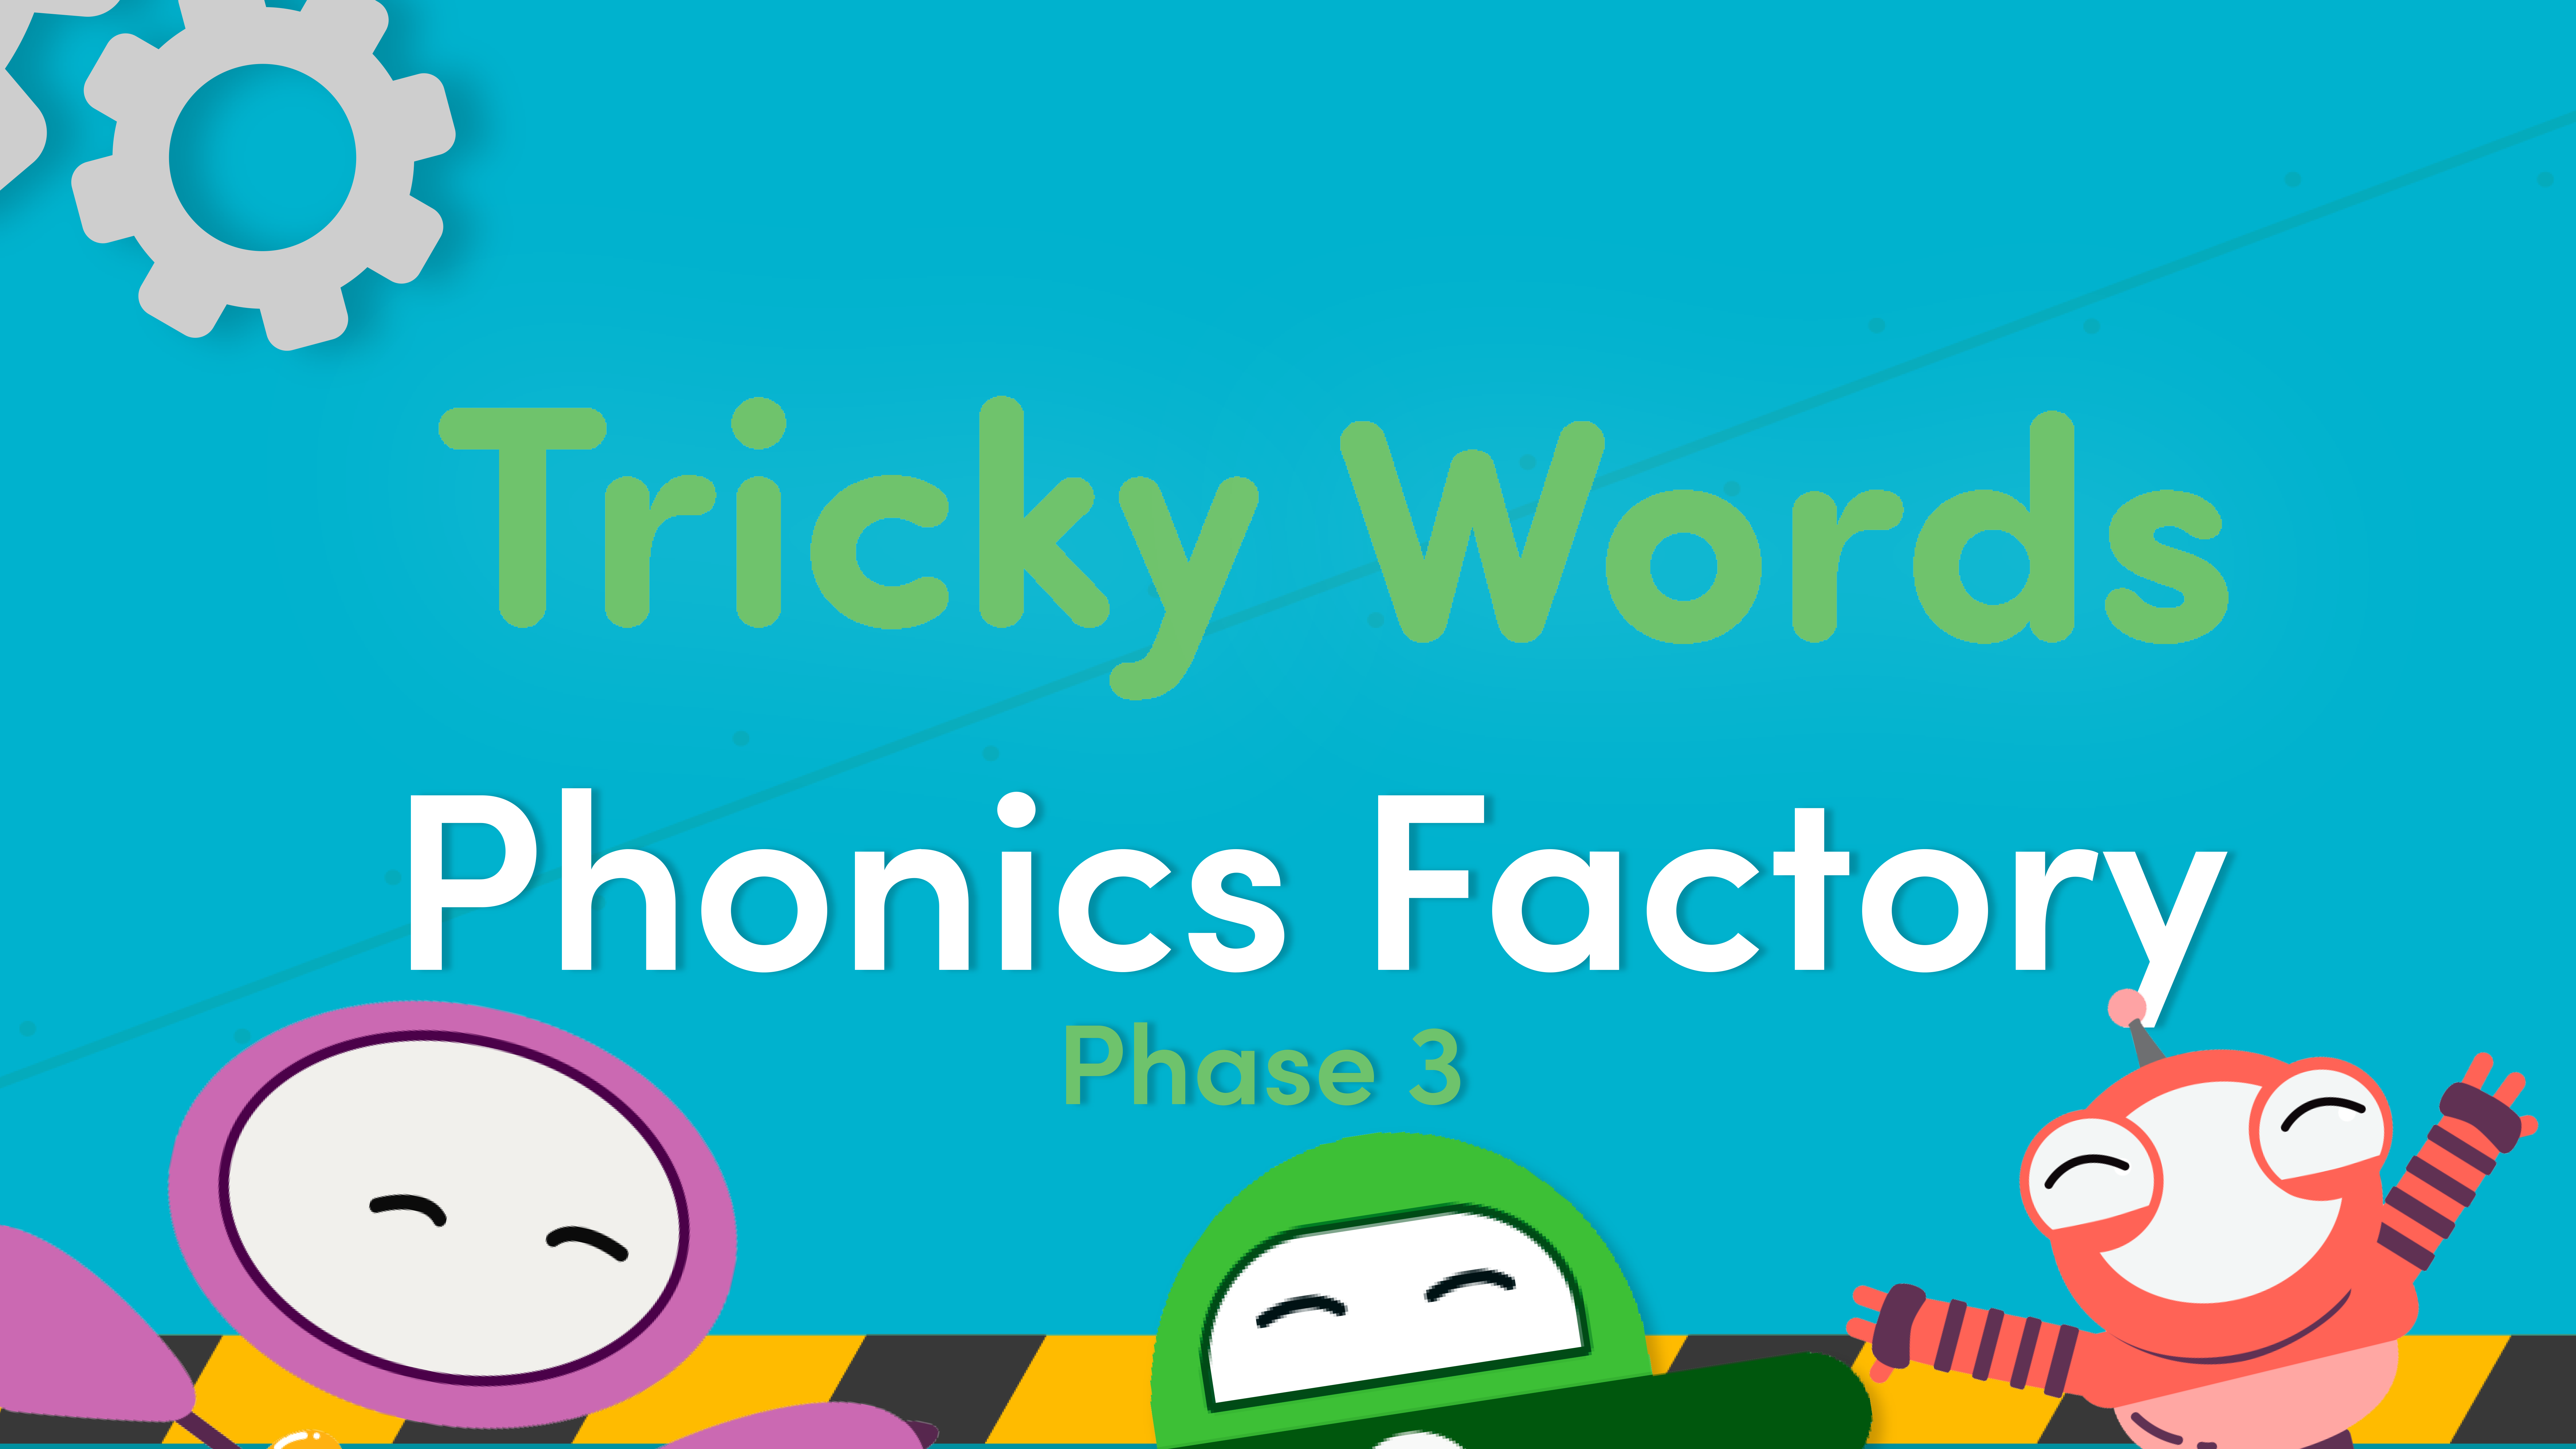 Tricky words phase 3